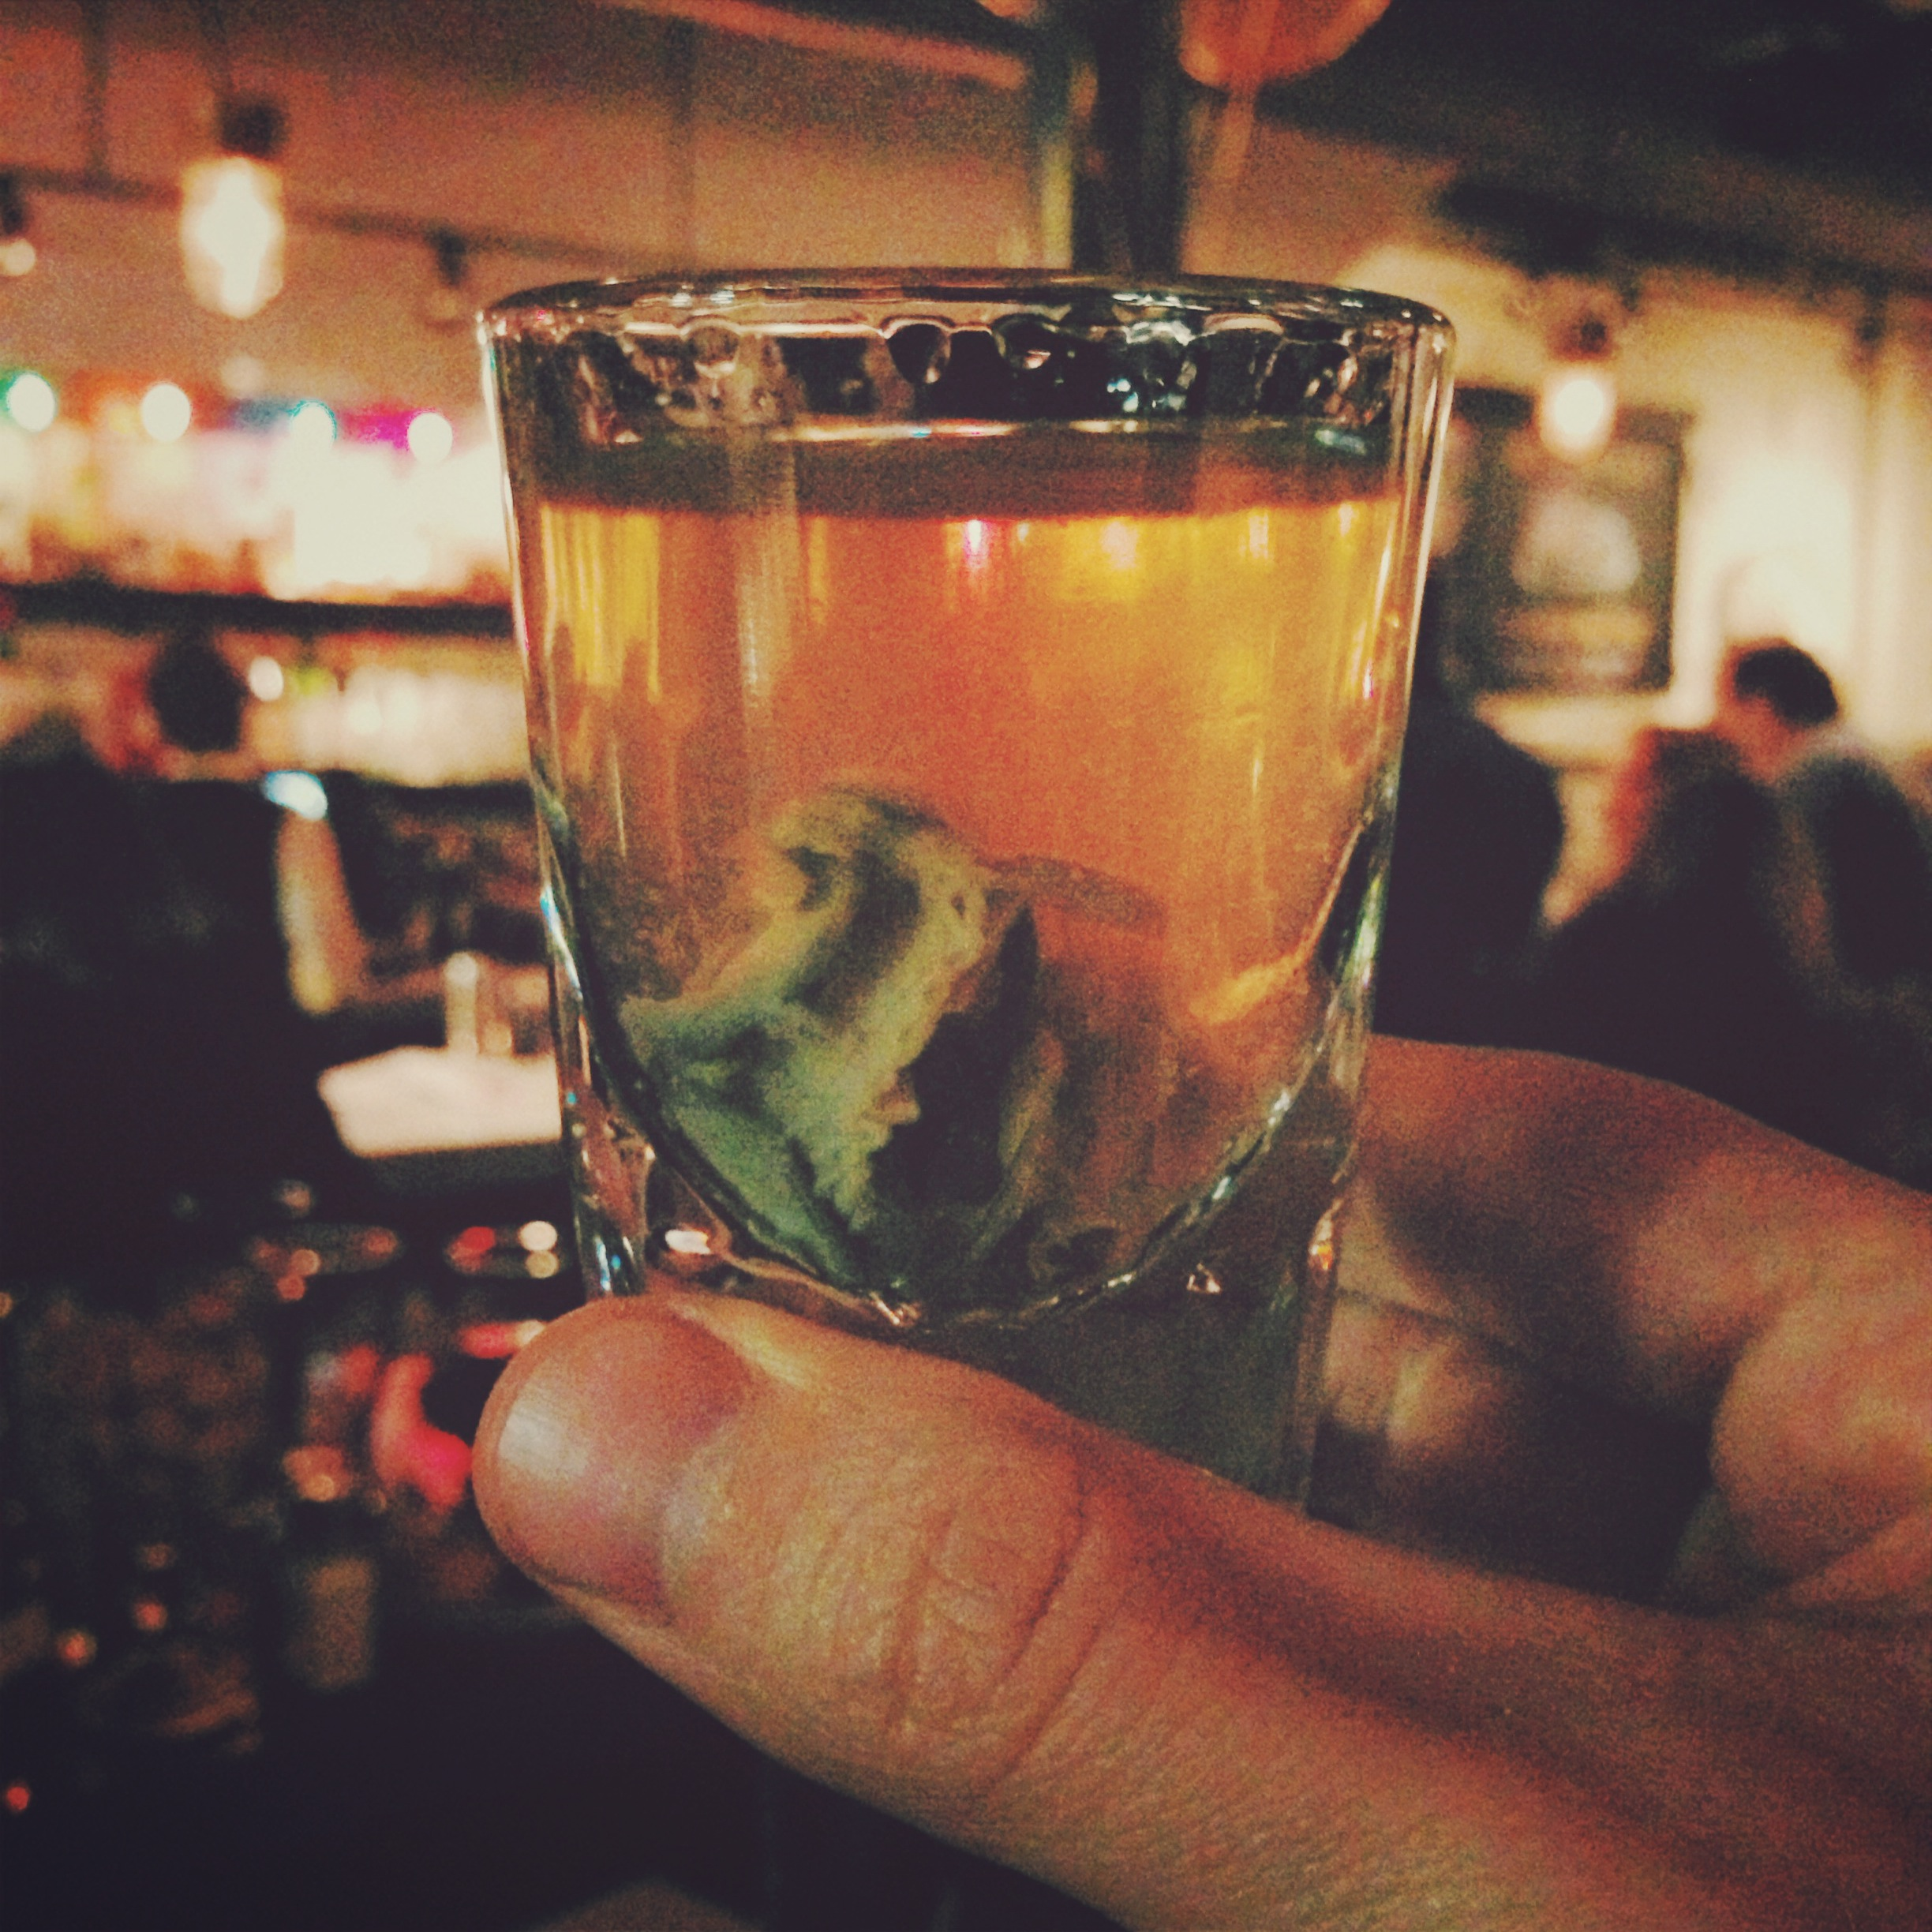 We closed the year out with a bang in Philadelphia, including gulping down oysters in gin...